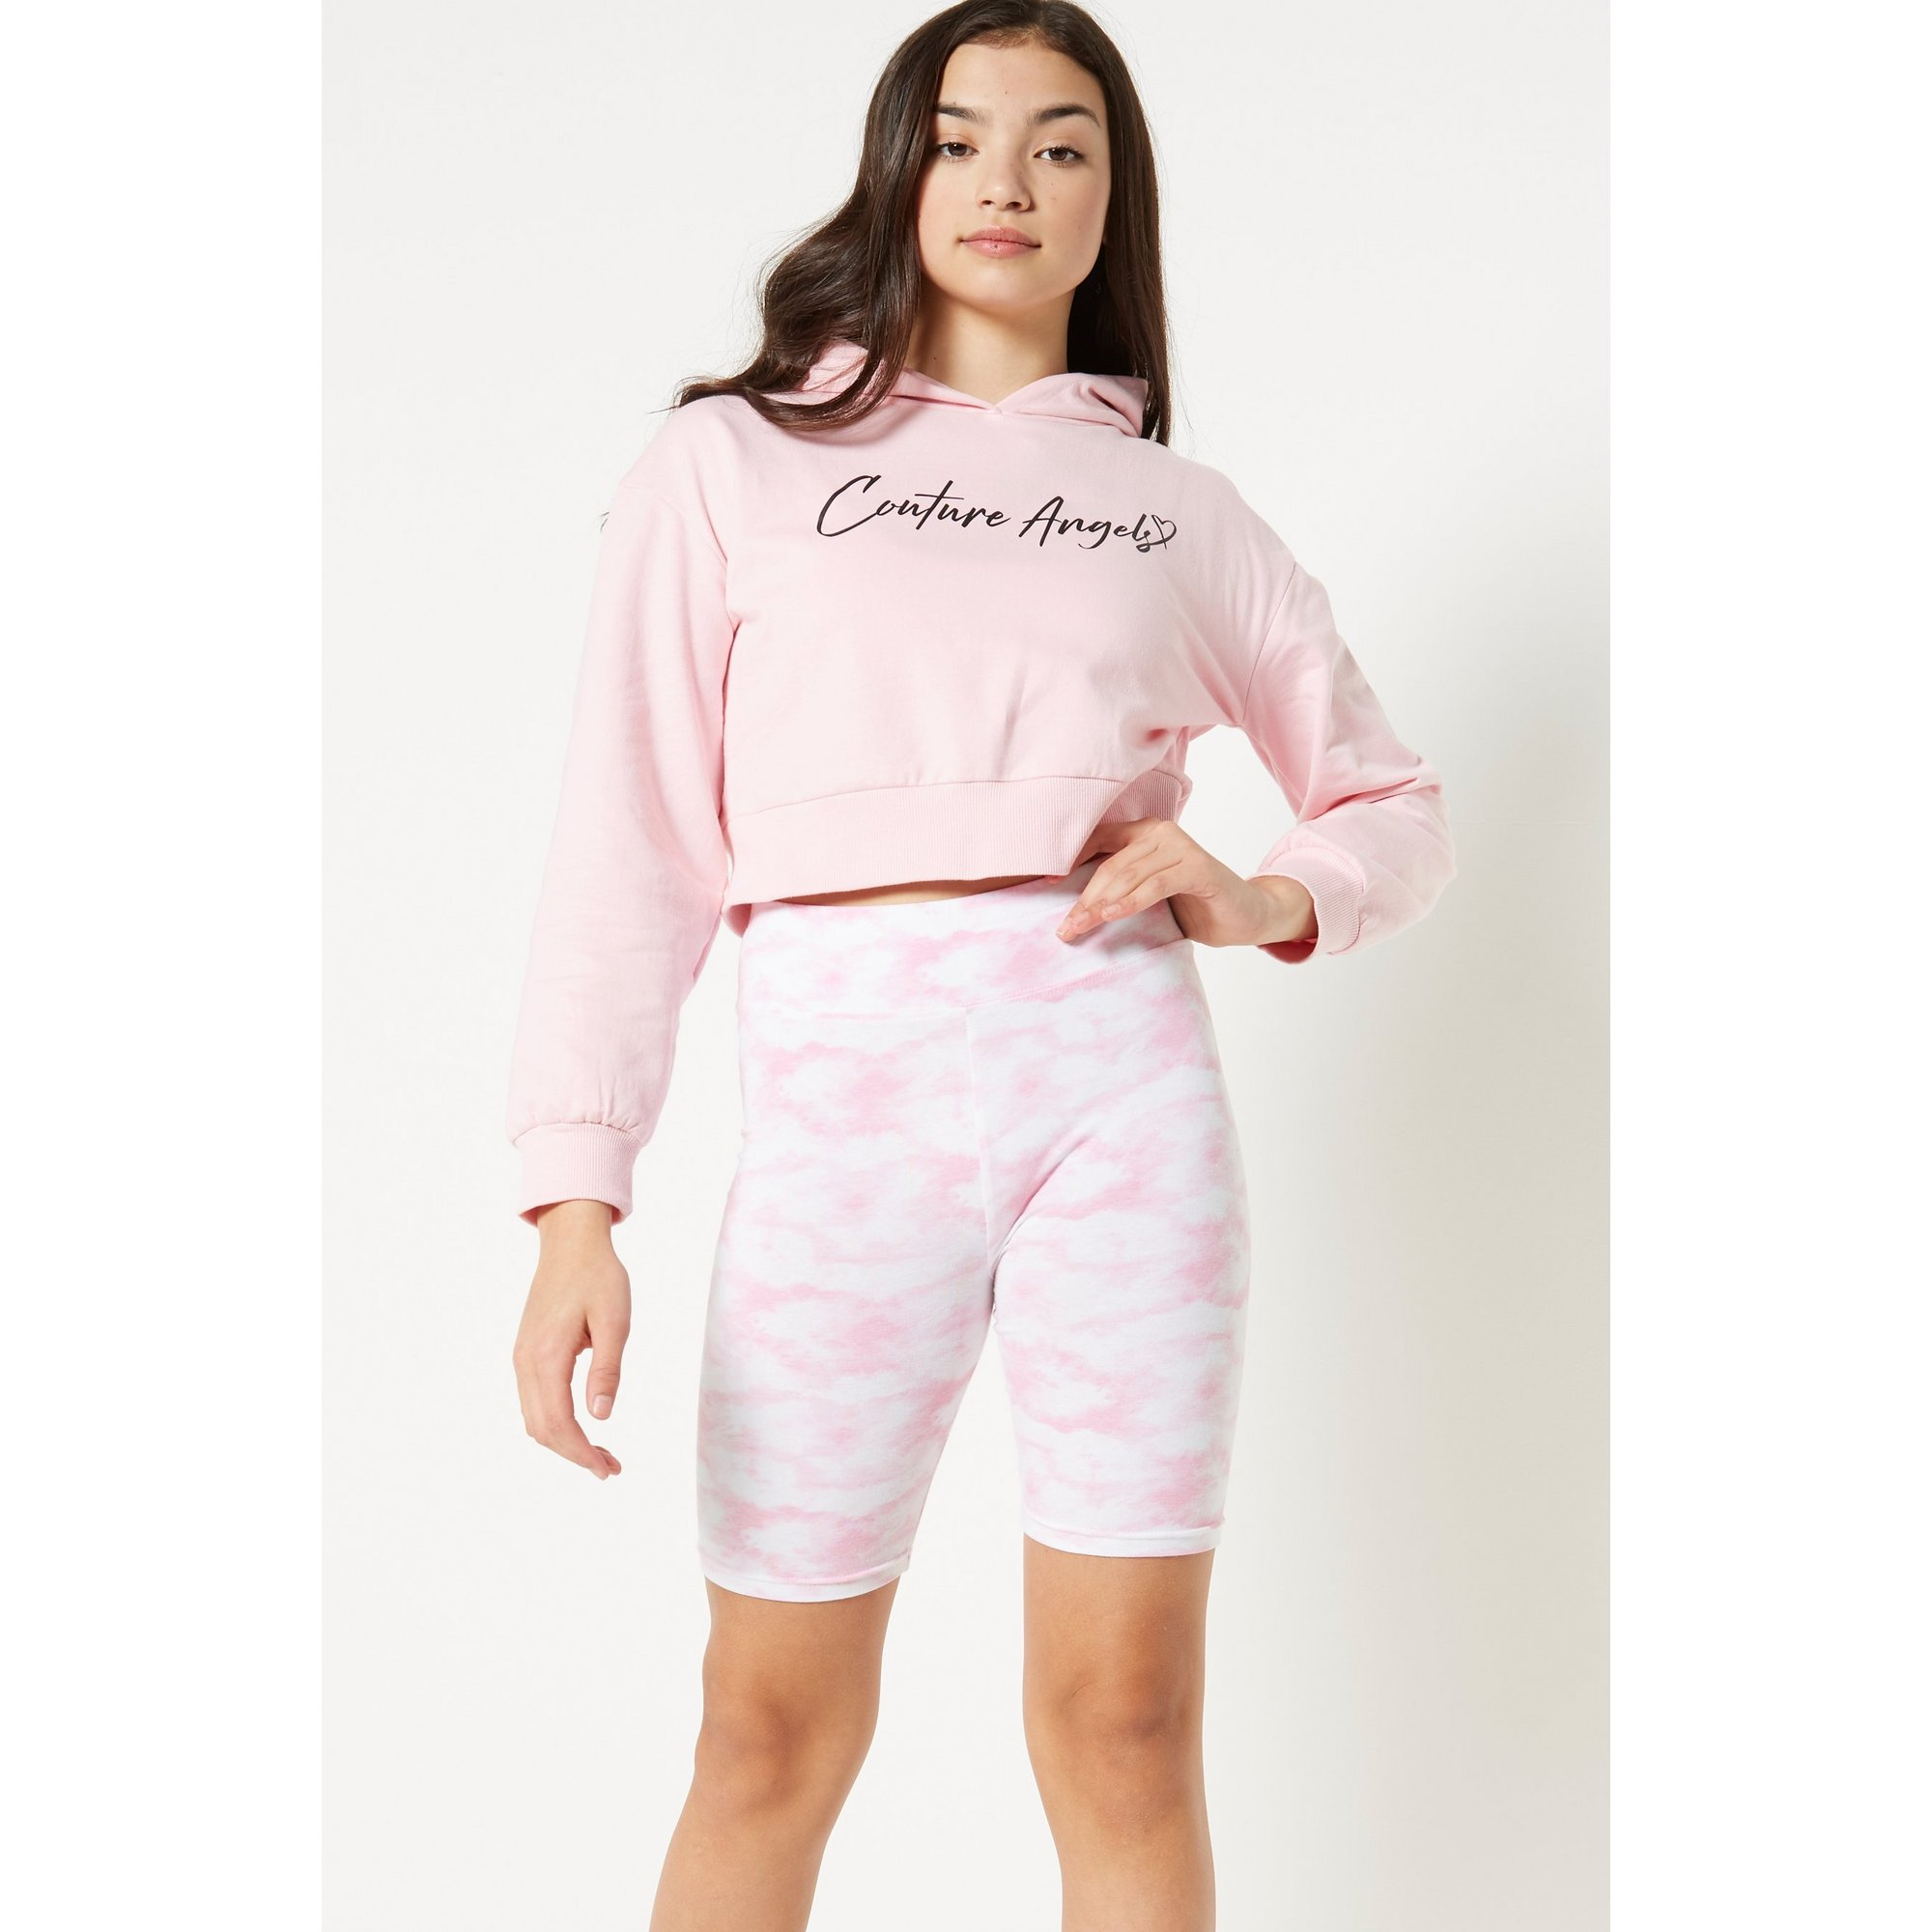 Image of Couture Angels Hoody and Tie Dye Cycling Shorts Set